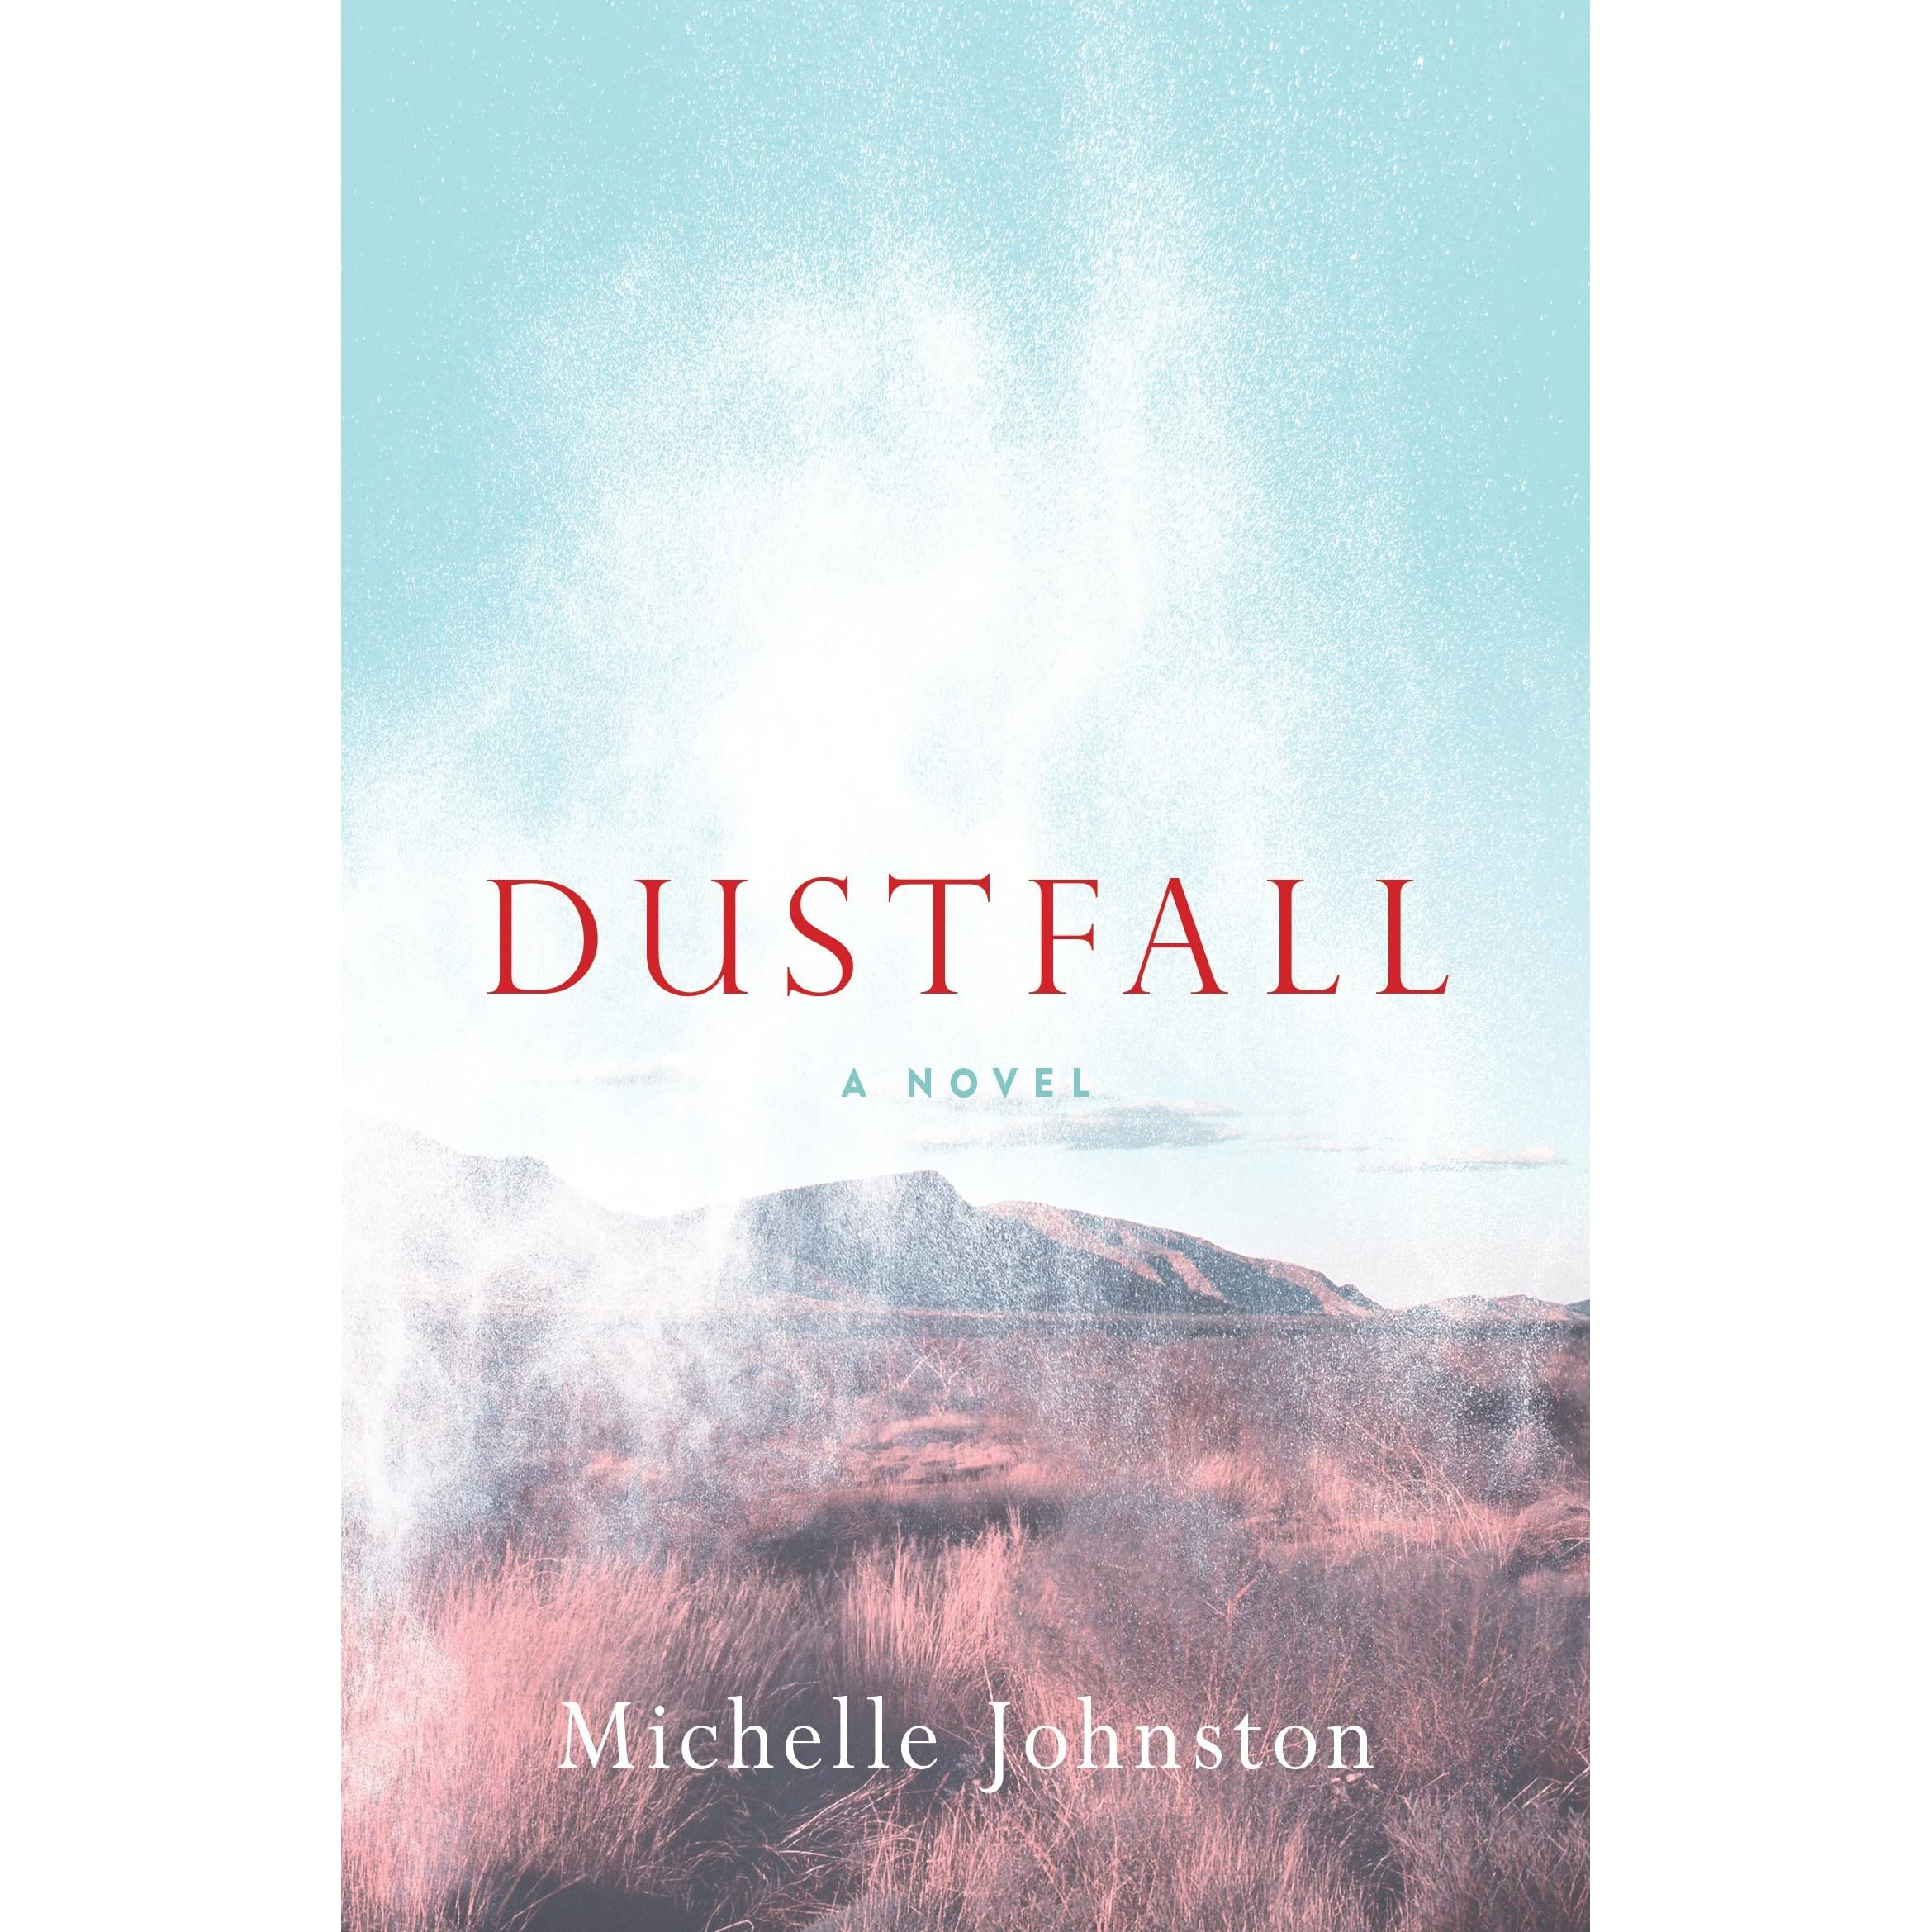 Handful of dust goodreads giveaways